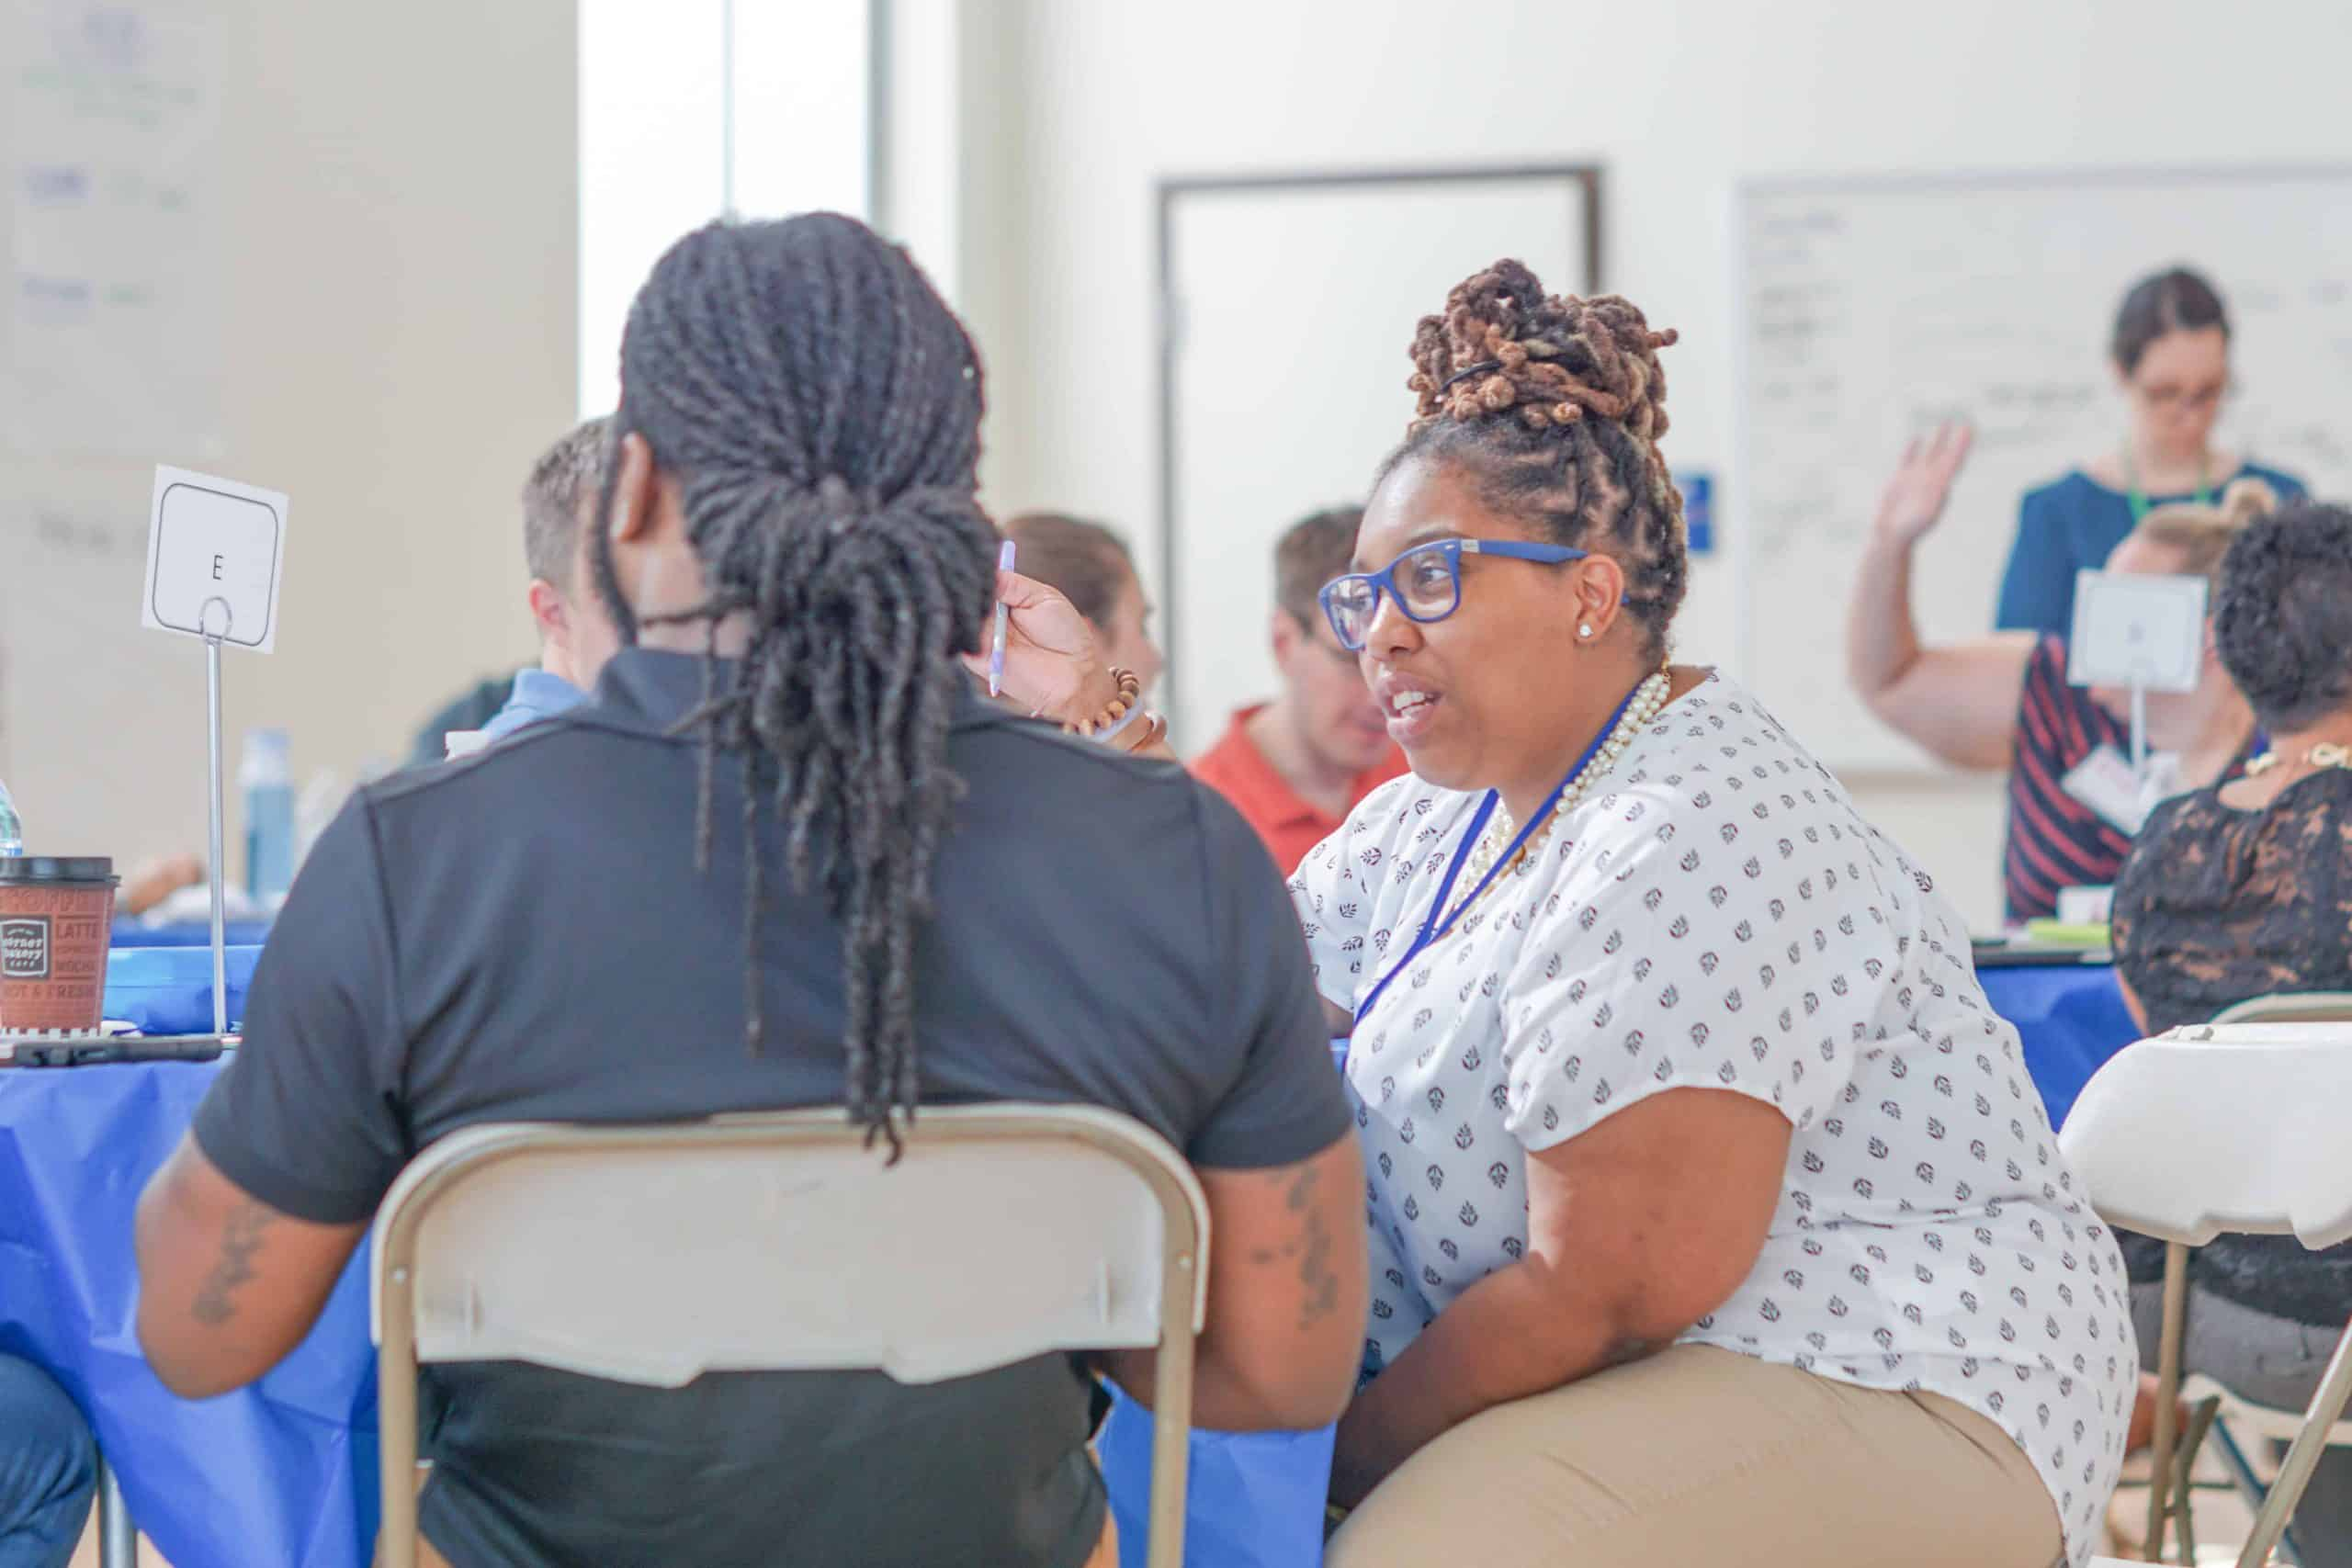 Two DC educators talk to each other during a session